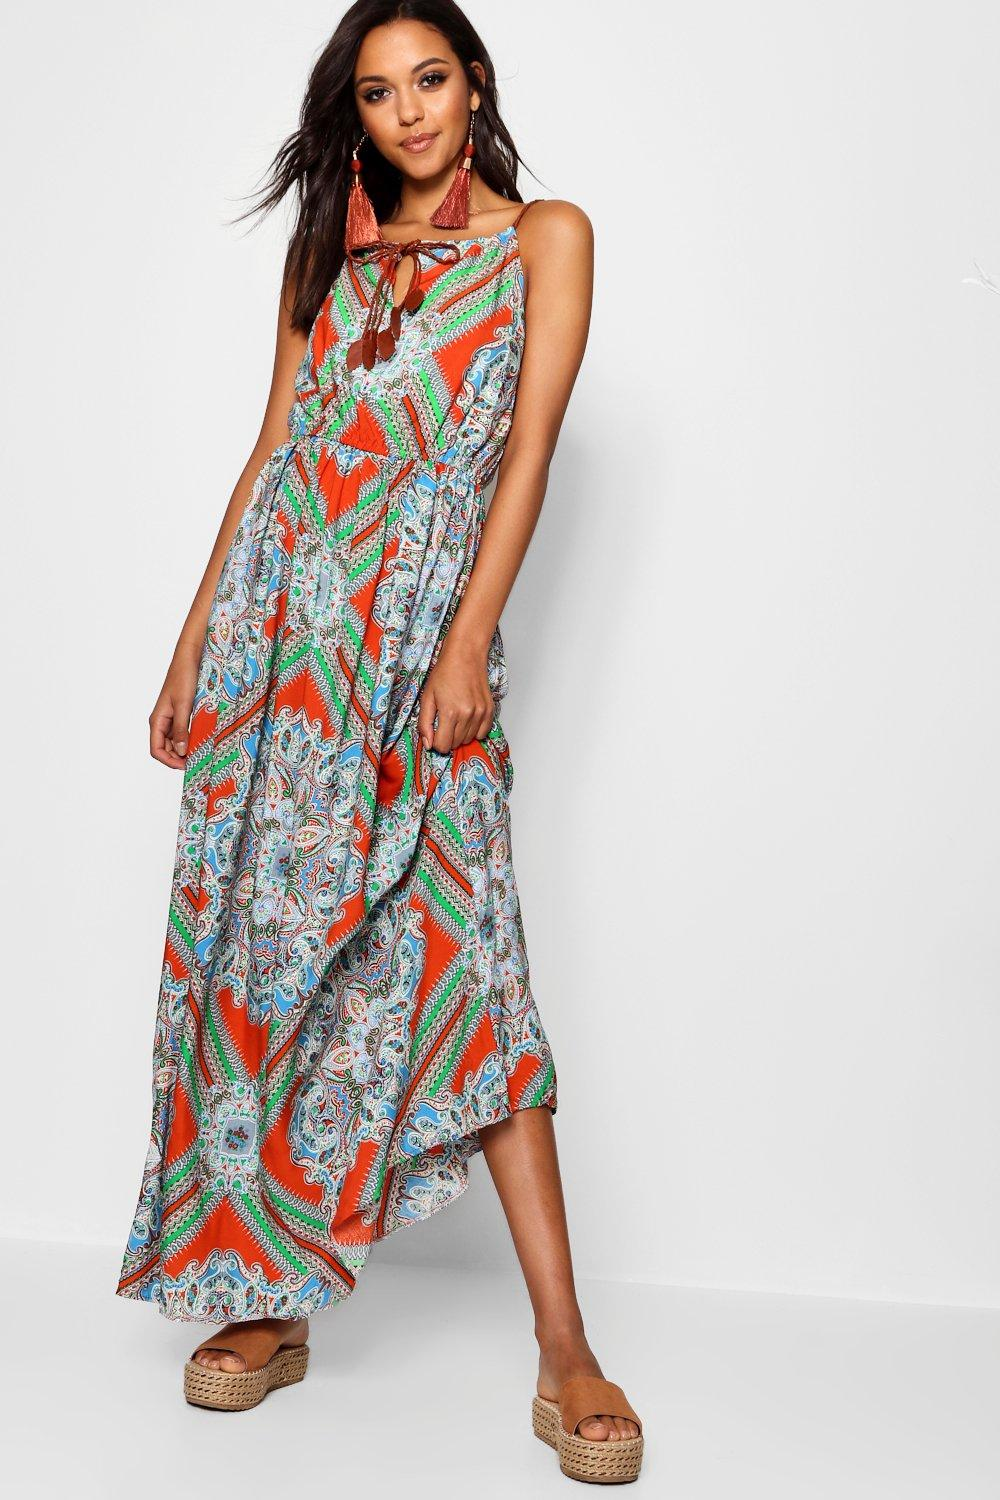 Lina Plait Detail Paisley Print Maxi Dress | Boohoo